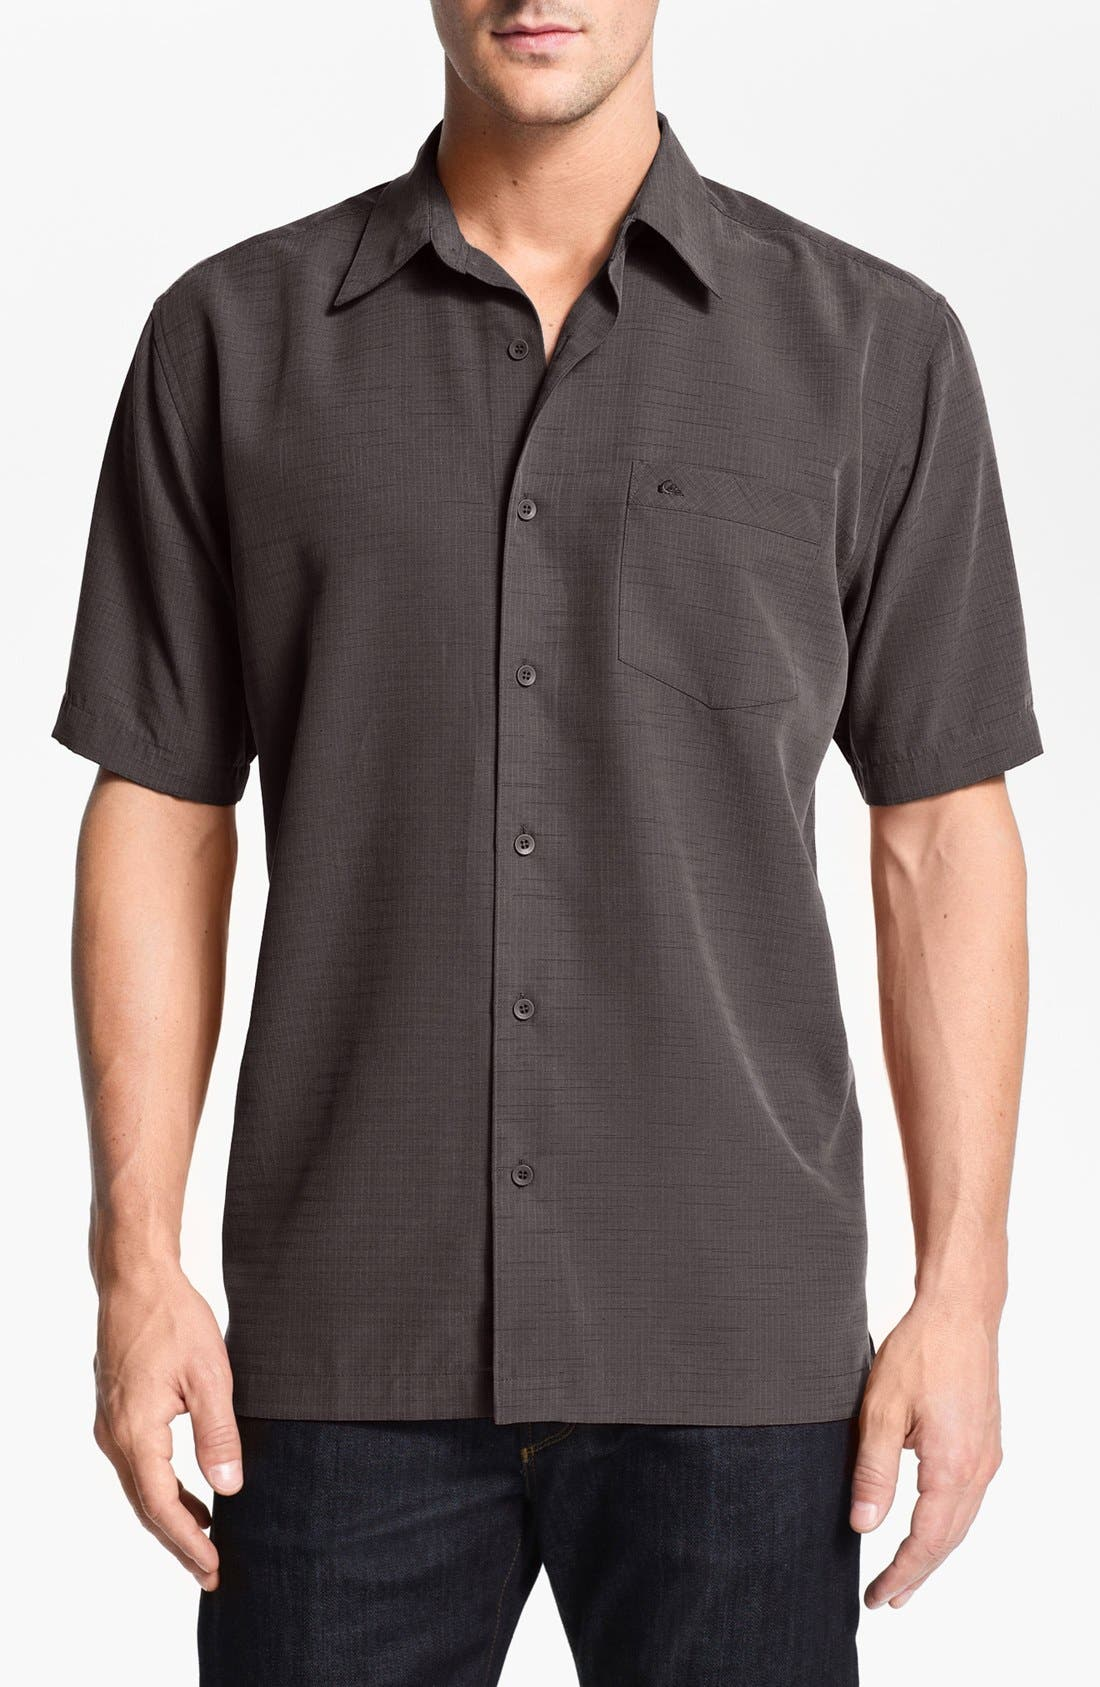 Alternate Image 1 Selected - Quiksilver Waterman Collection 'Centinella' Regular Fit Sport Shirt